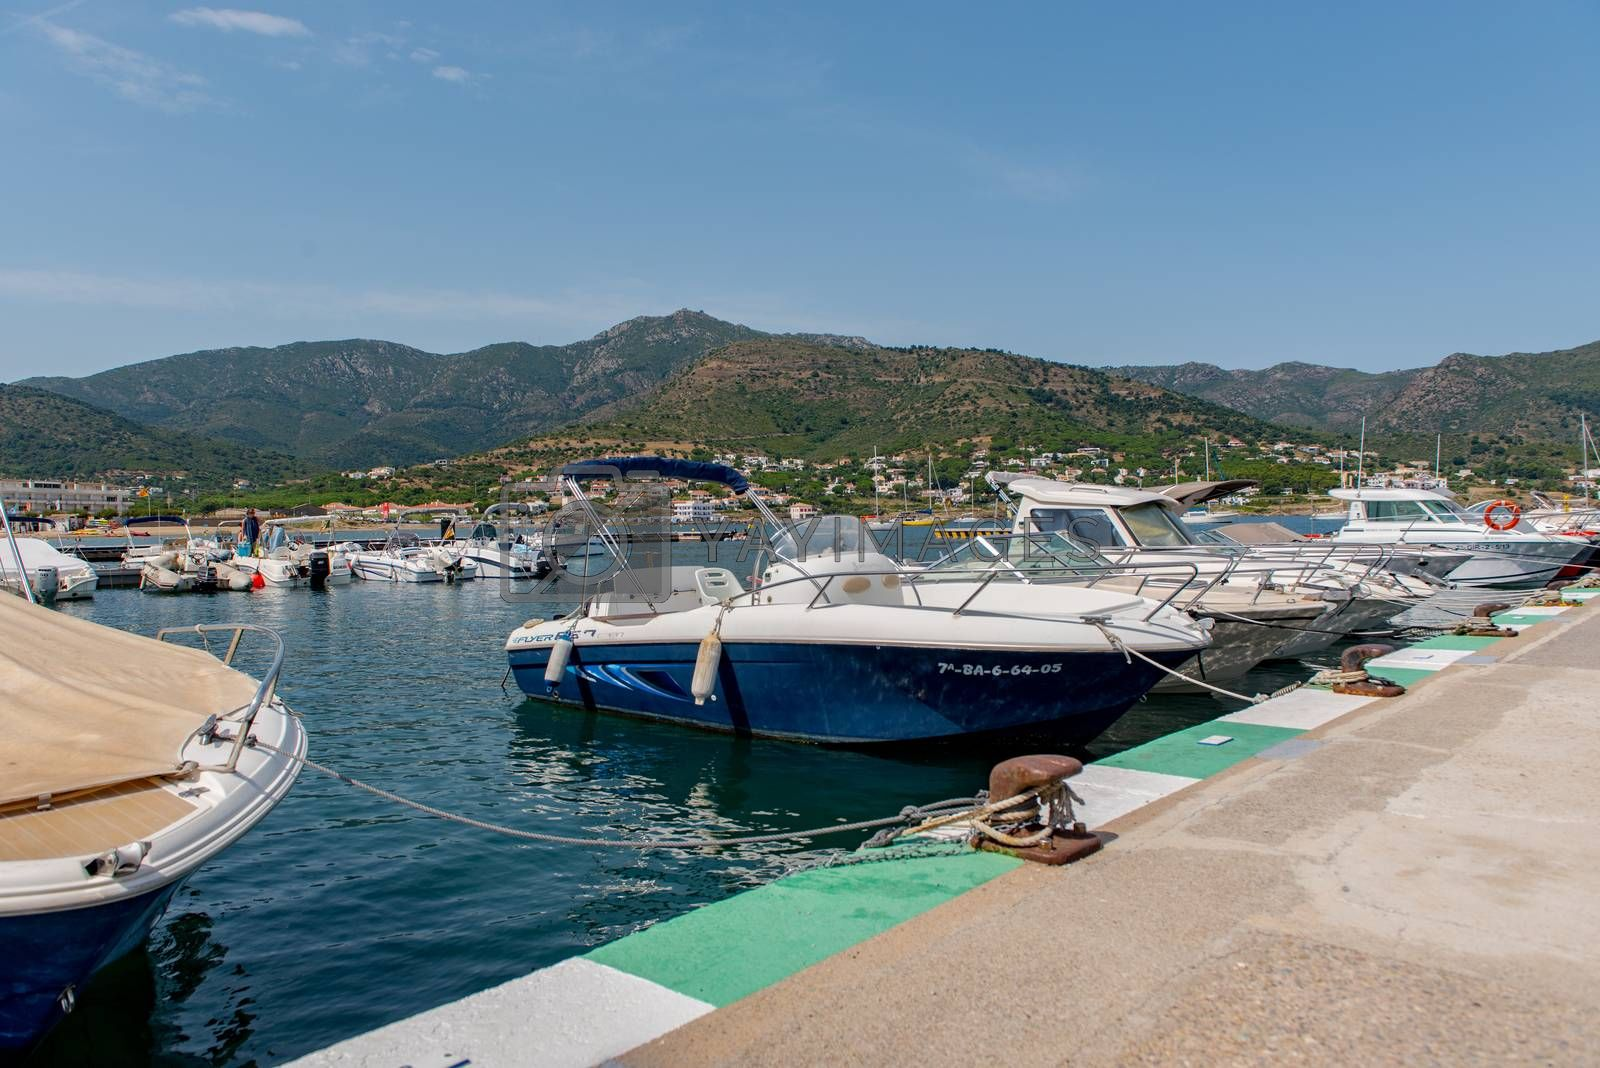 Port de la Selva, Spain : 9 July 2020 : View of Port de la Selva, one of the most touristic villages of Costa Brava, on 9 July 2020, in Port de la Selva, Catalonia, Spain.